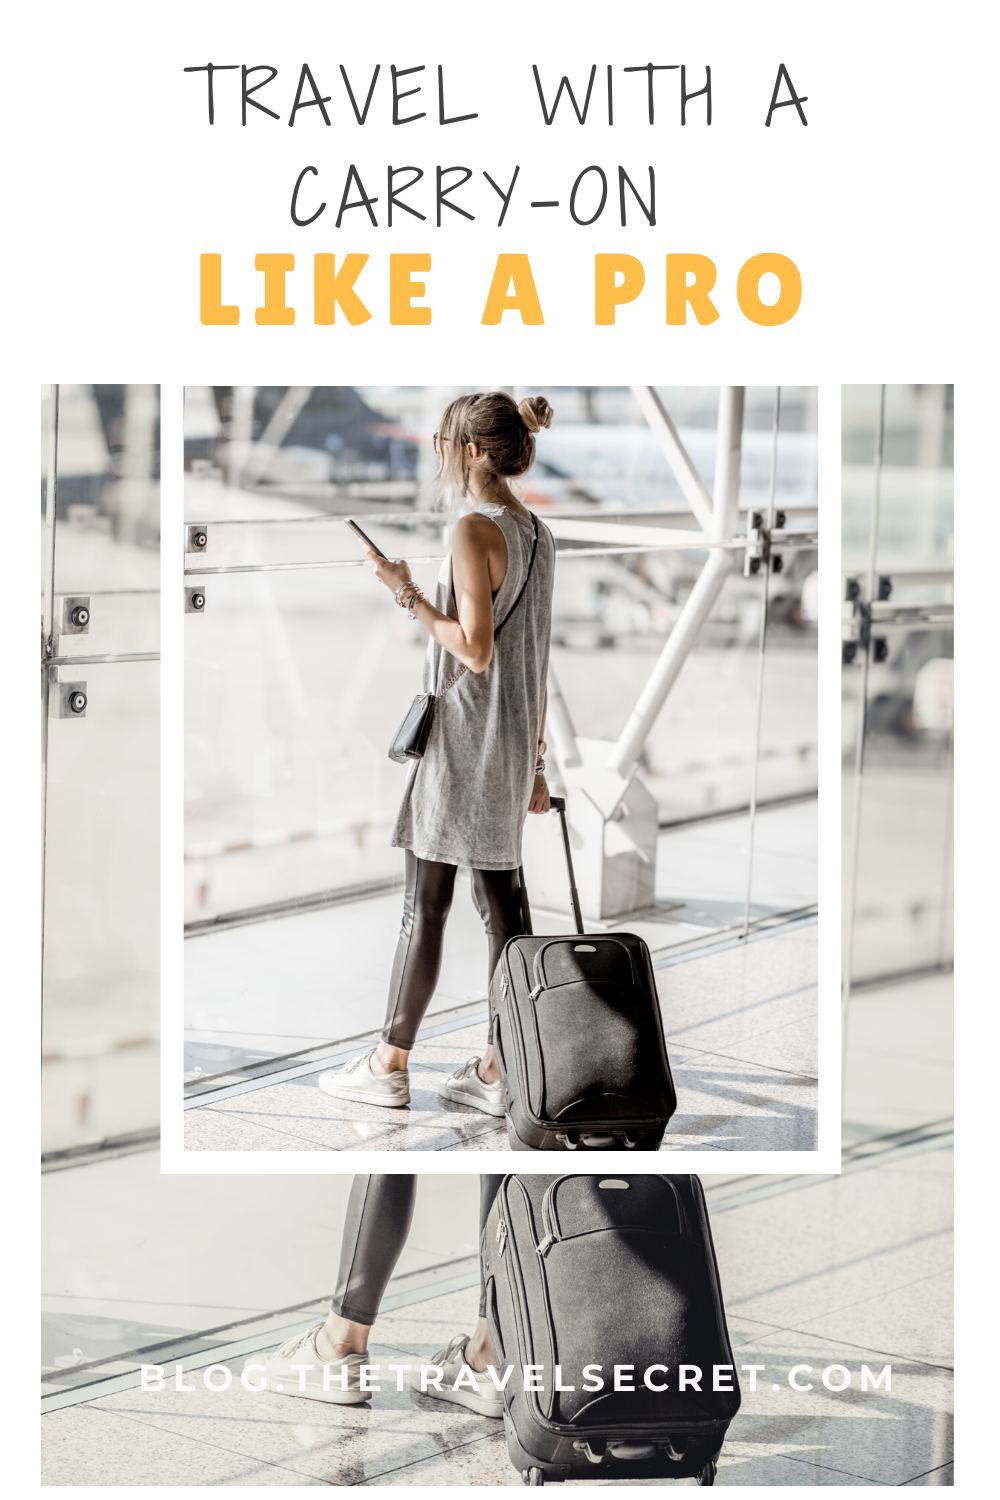 Travel With A Carry-on Like a Pro